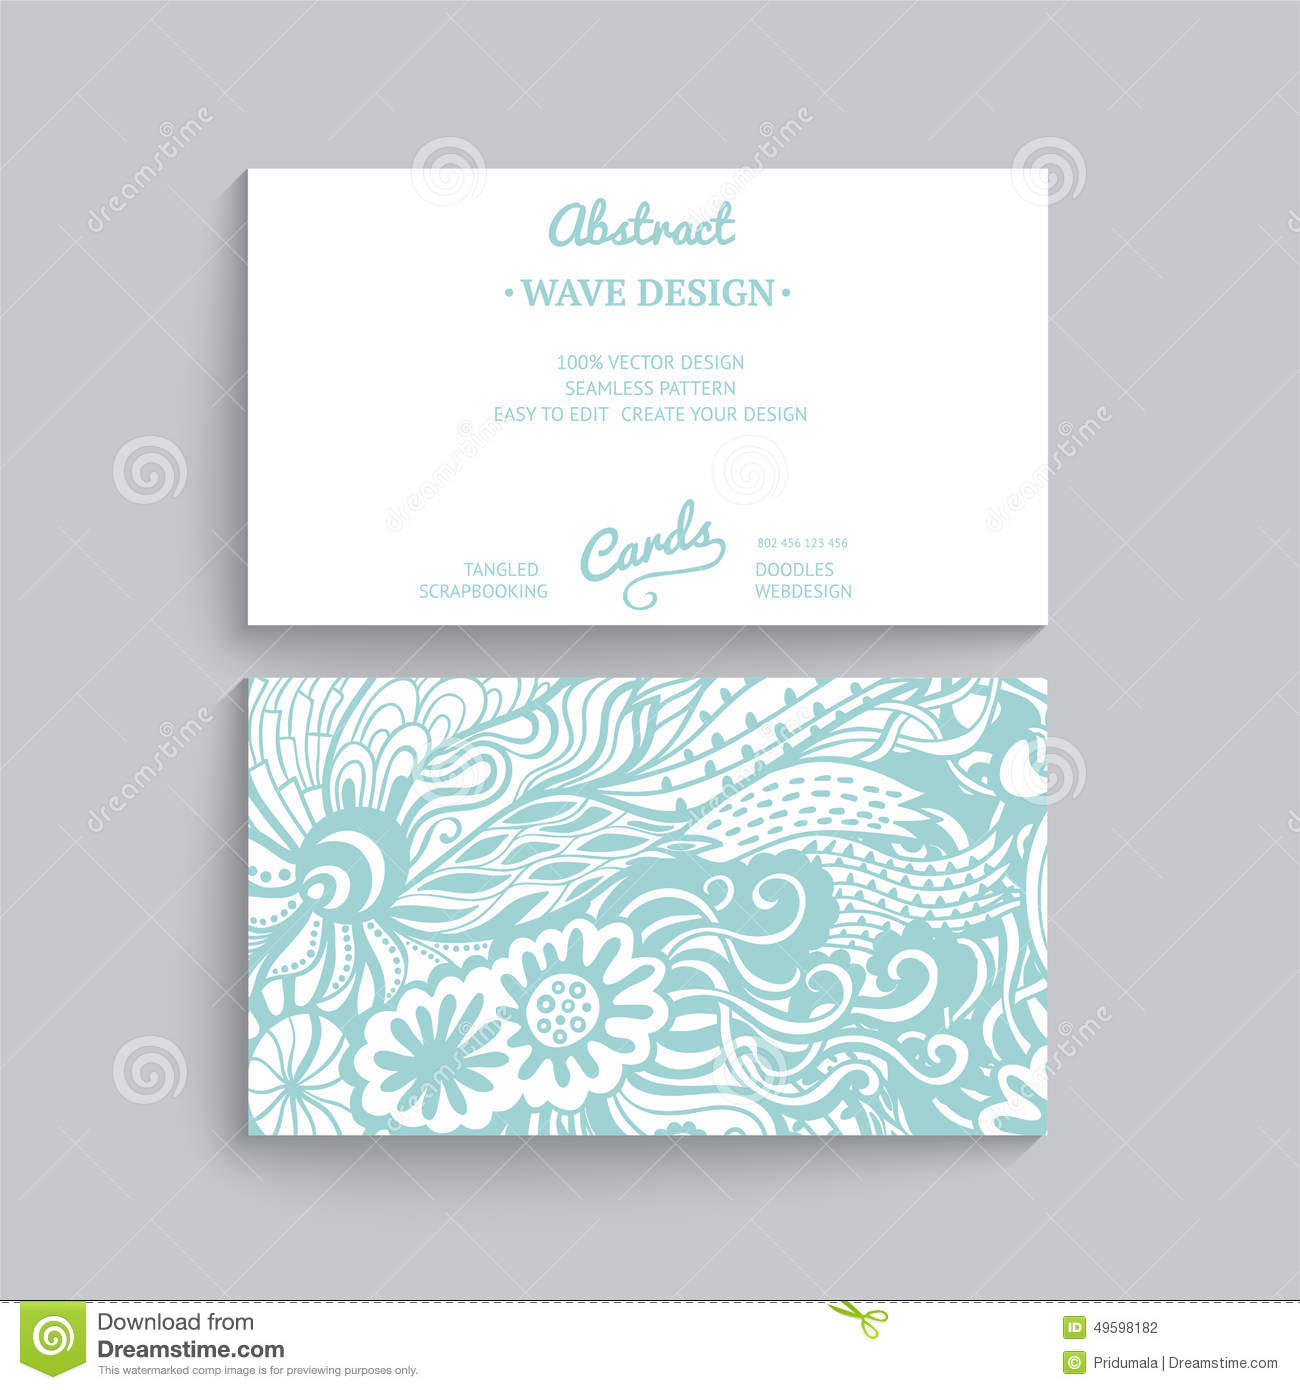 Vector Simple Business Card Template With Decorative Ornament, Stock ...